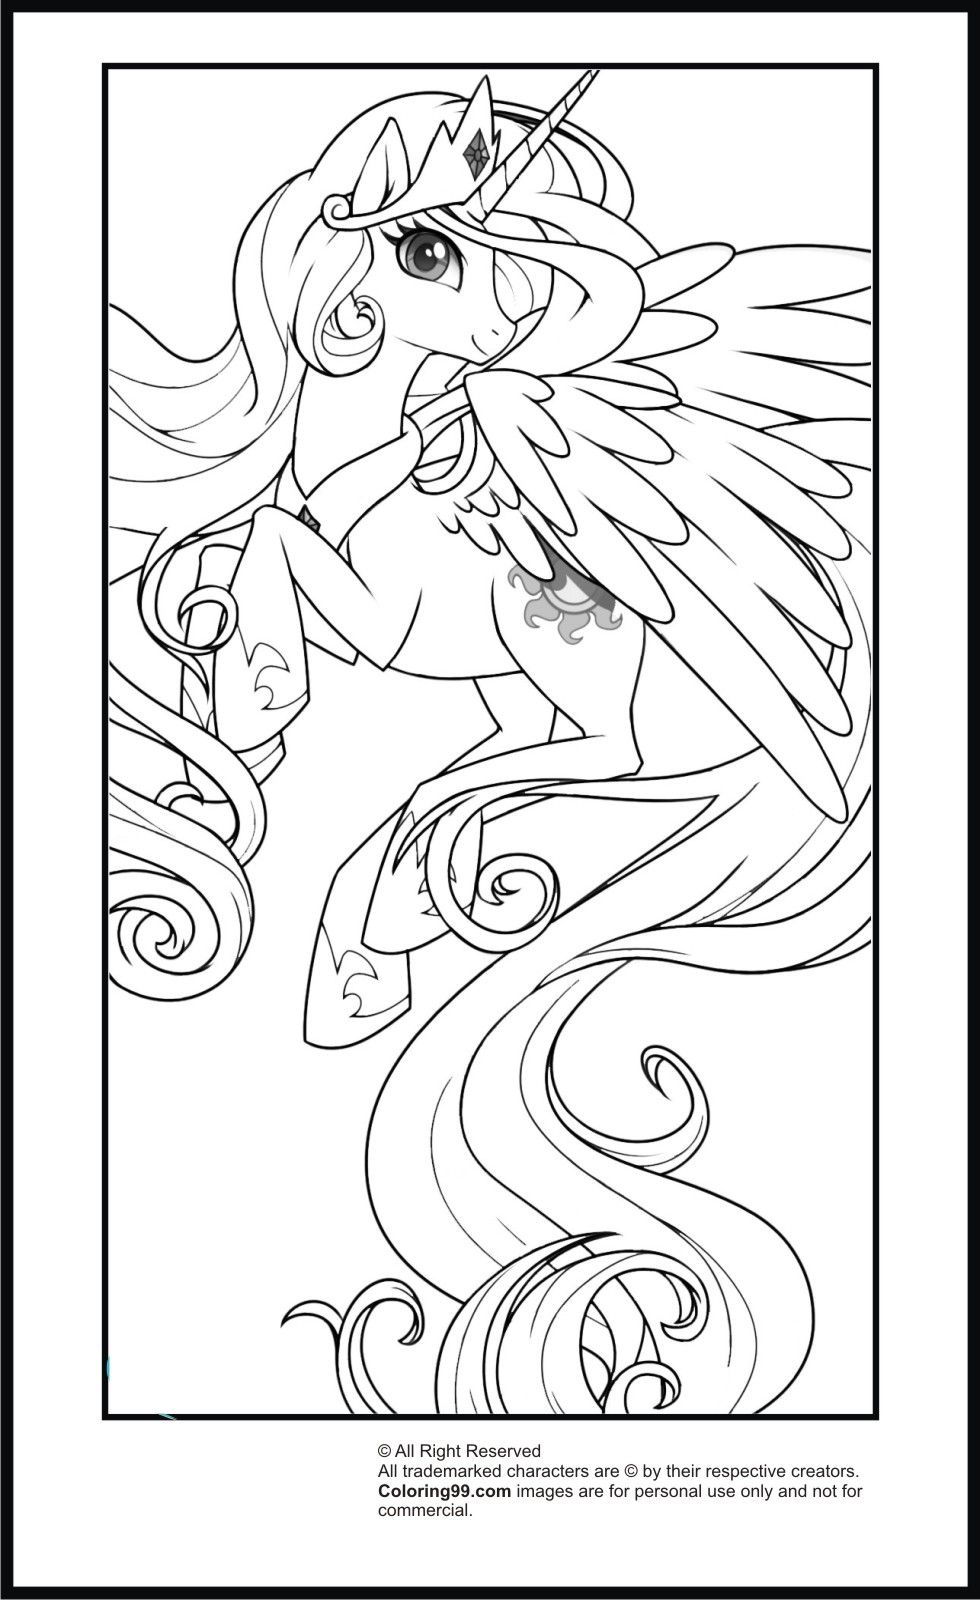 12 Pics of Celestia My Little Pony Coloring Pages - My Little Pony ...